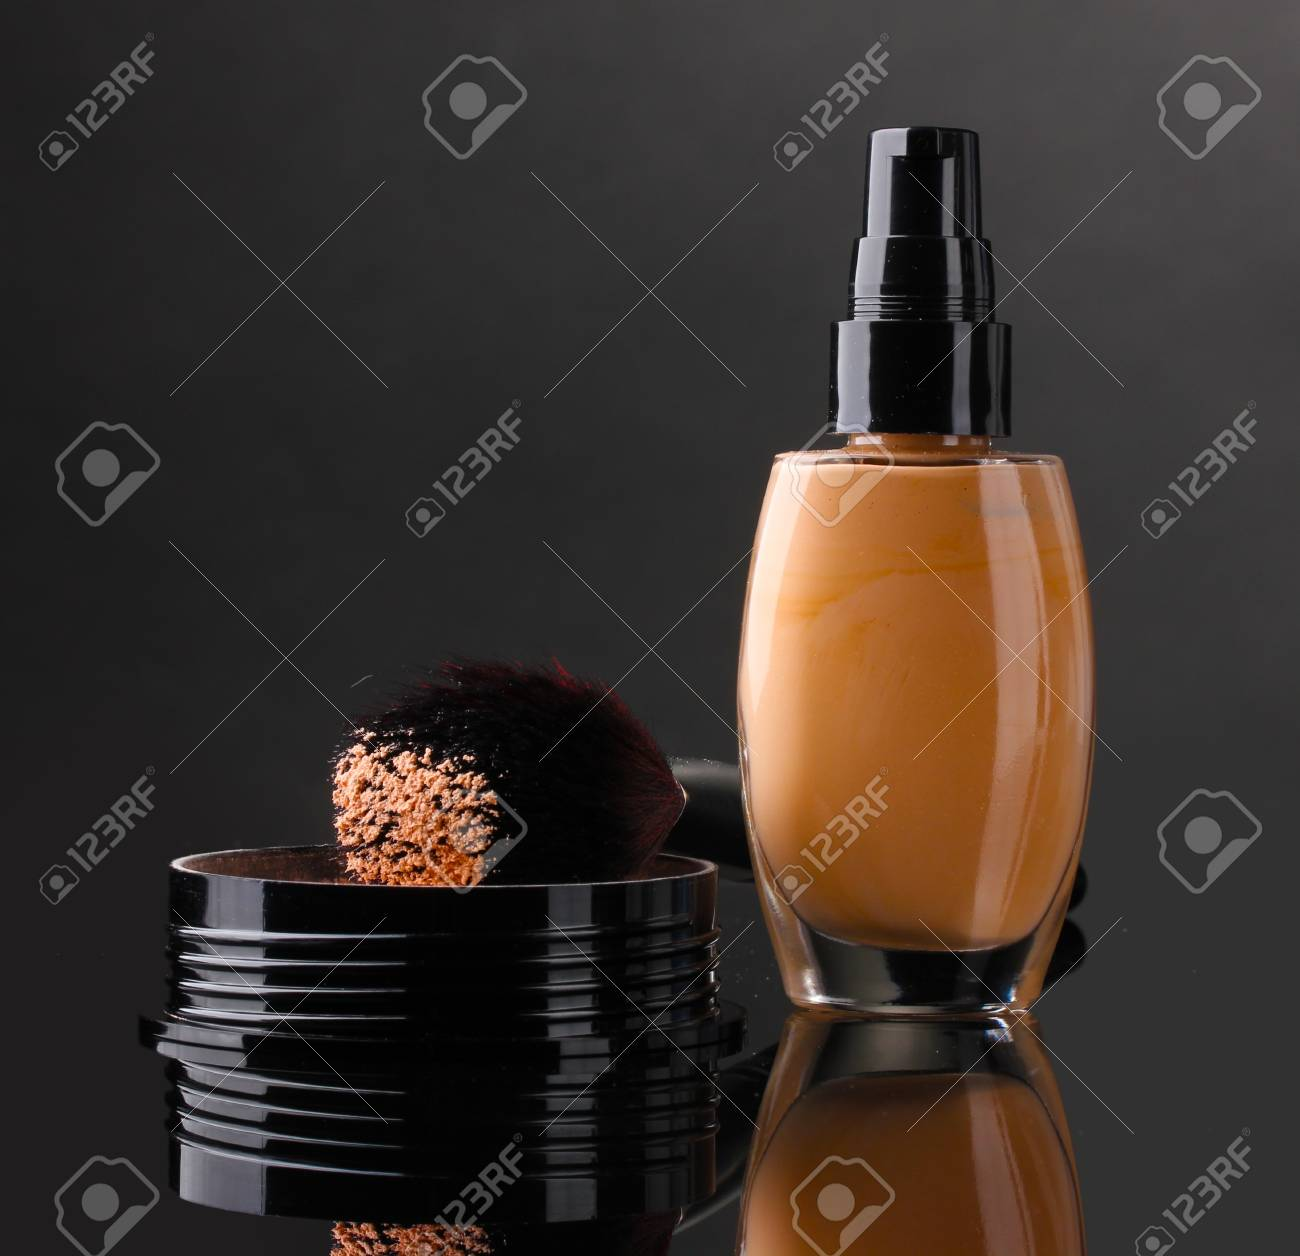 Сosmetics isolated on black Stock Photo - 13993916